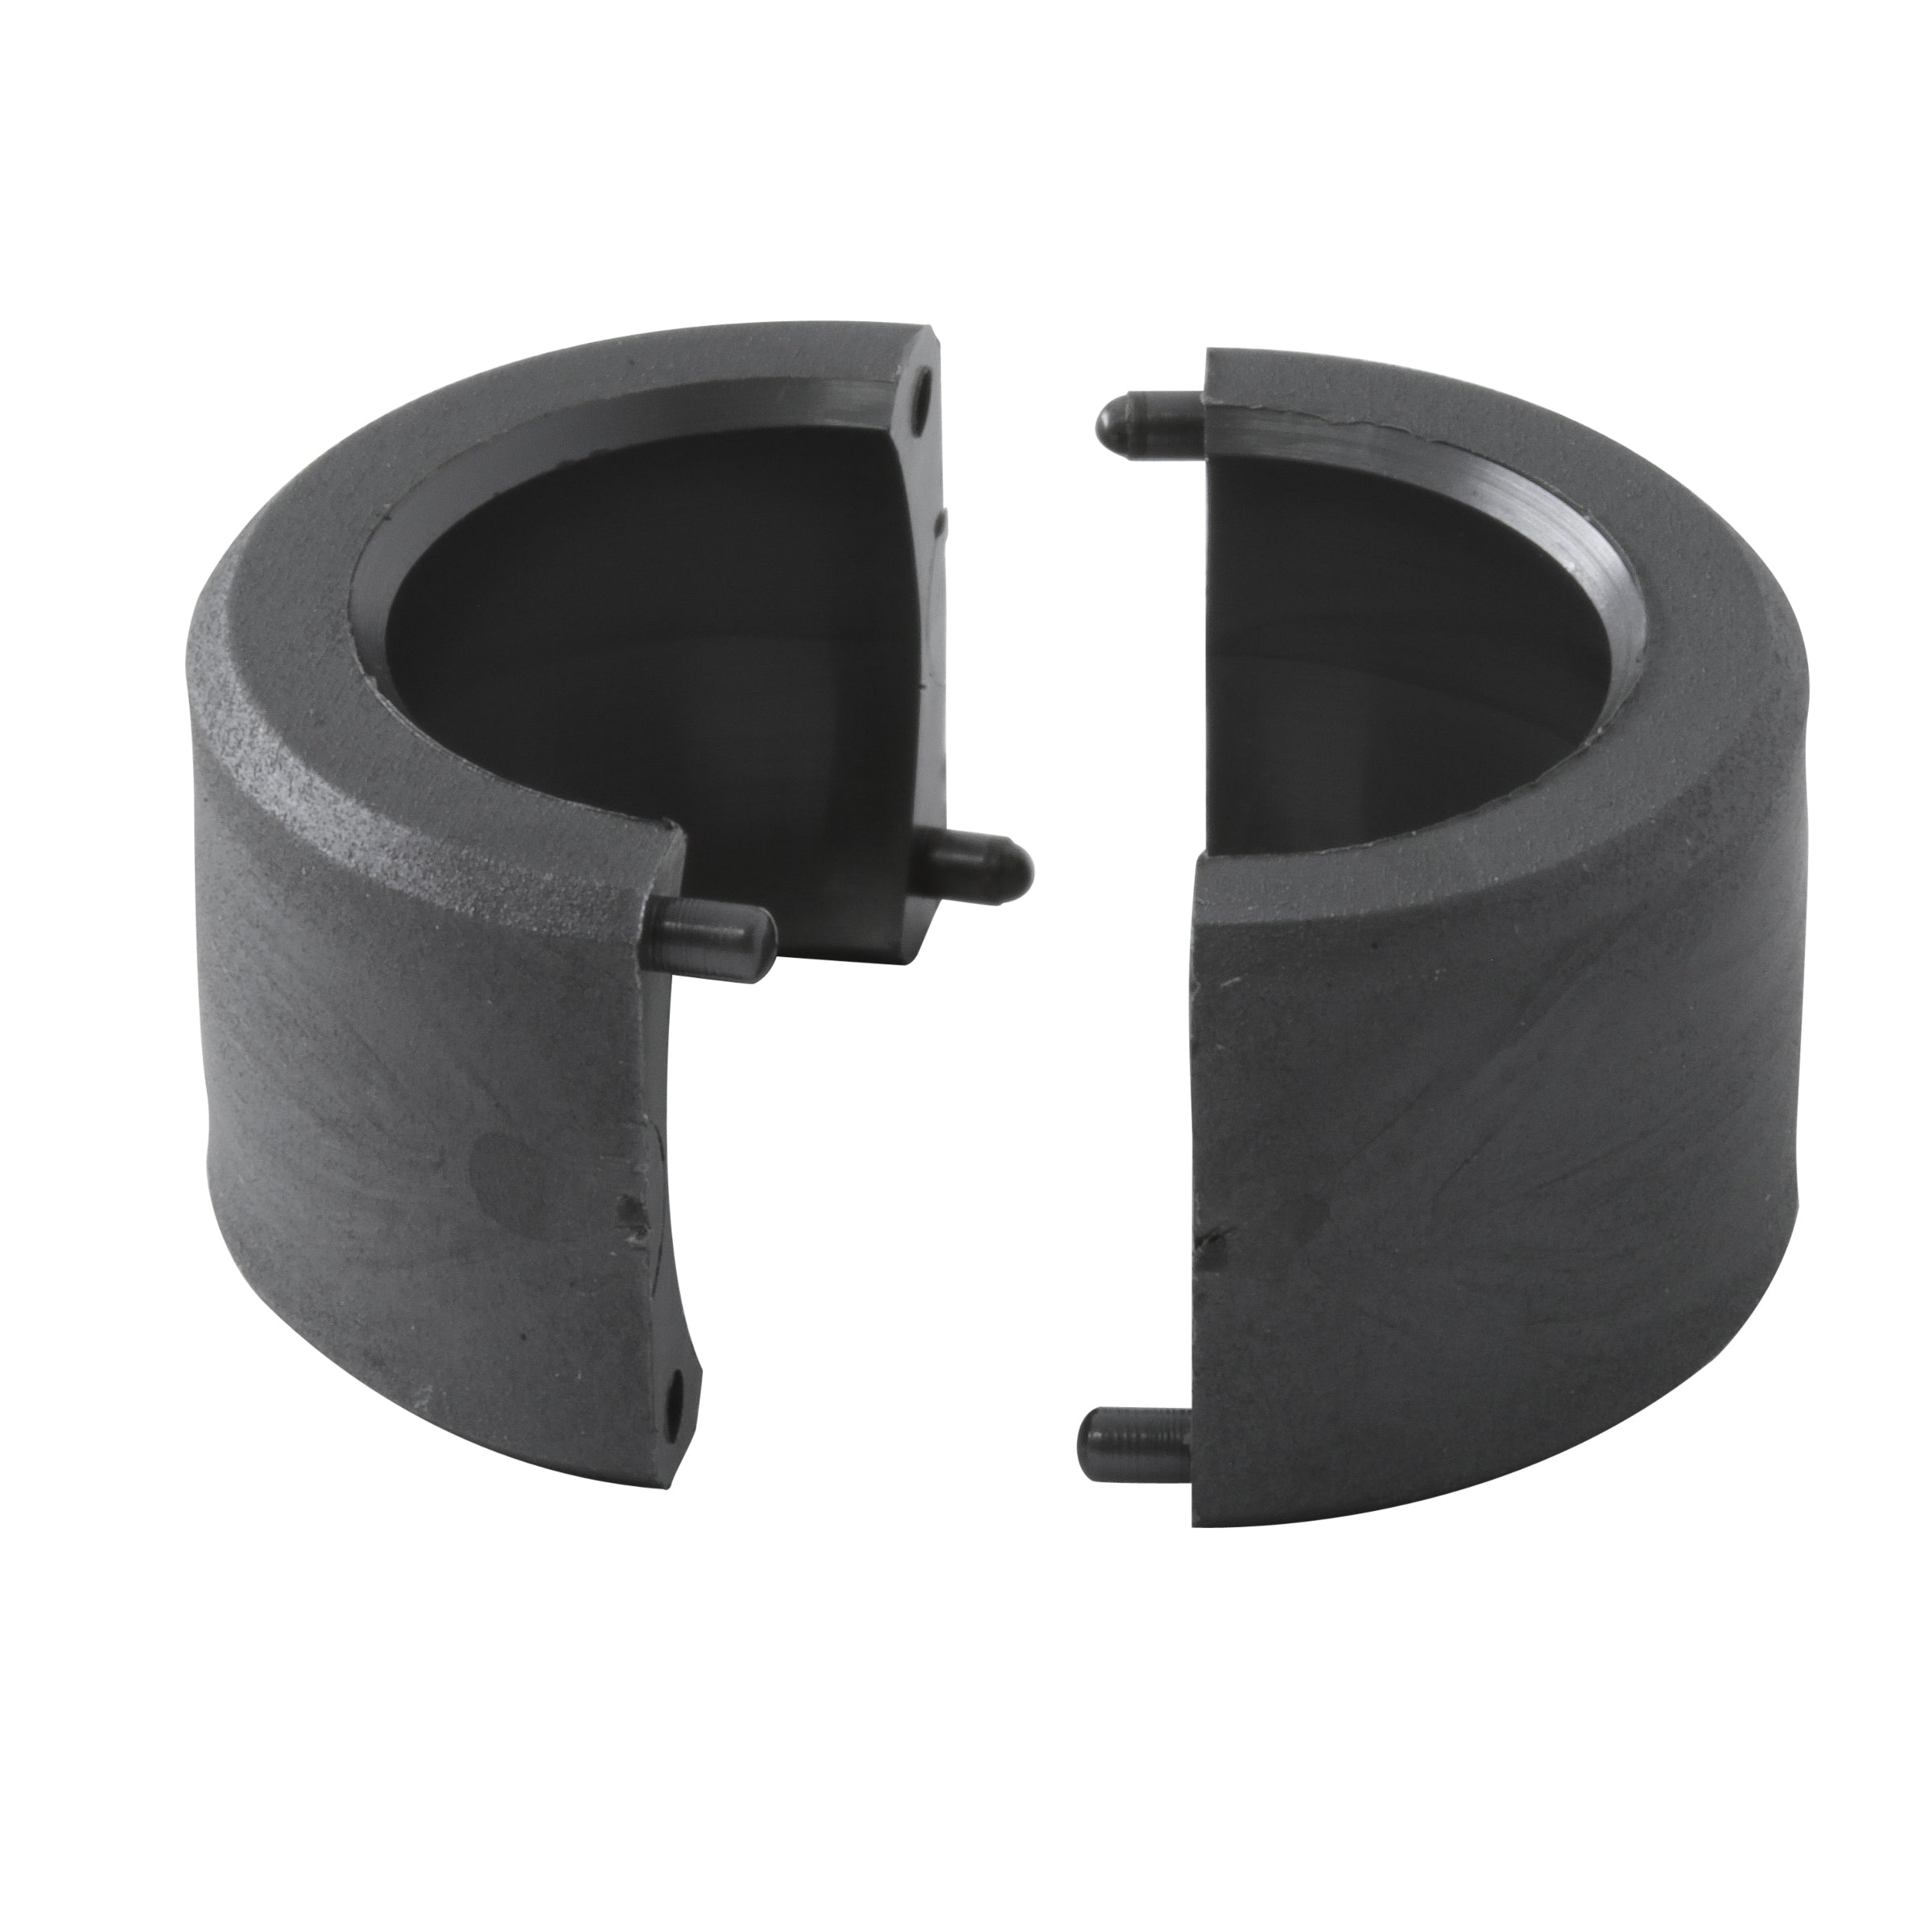 Clutch Ball Split Bushings